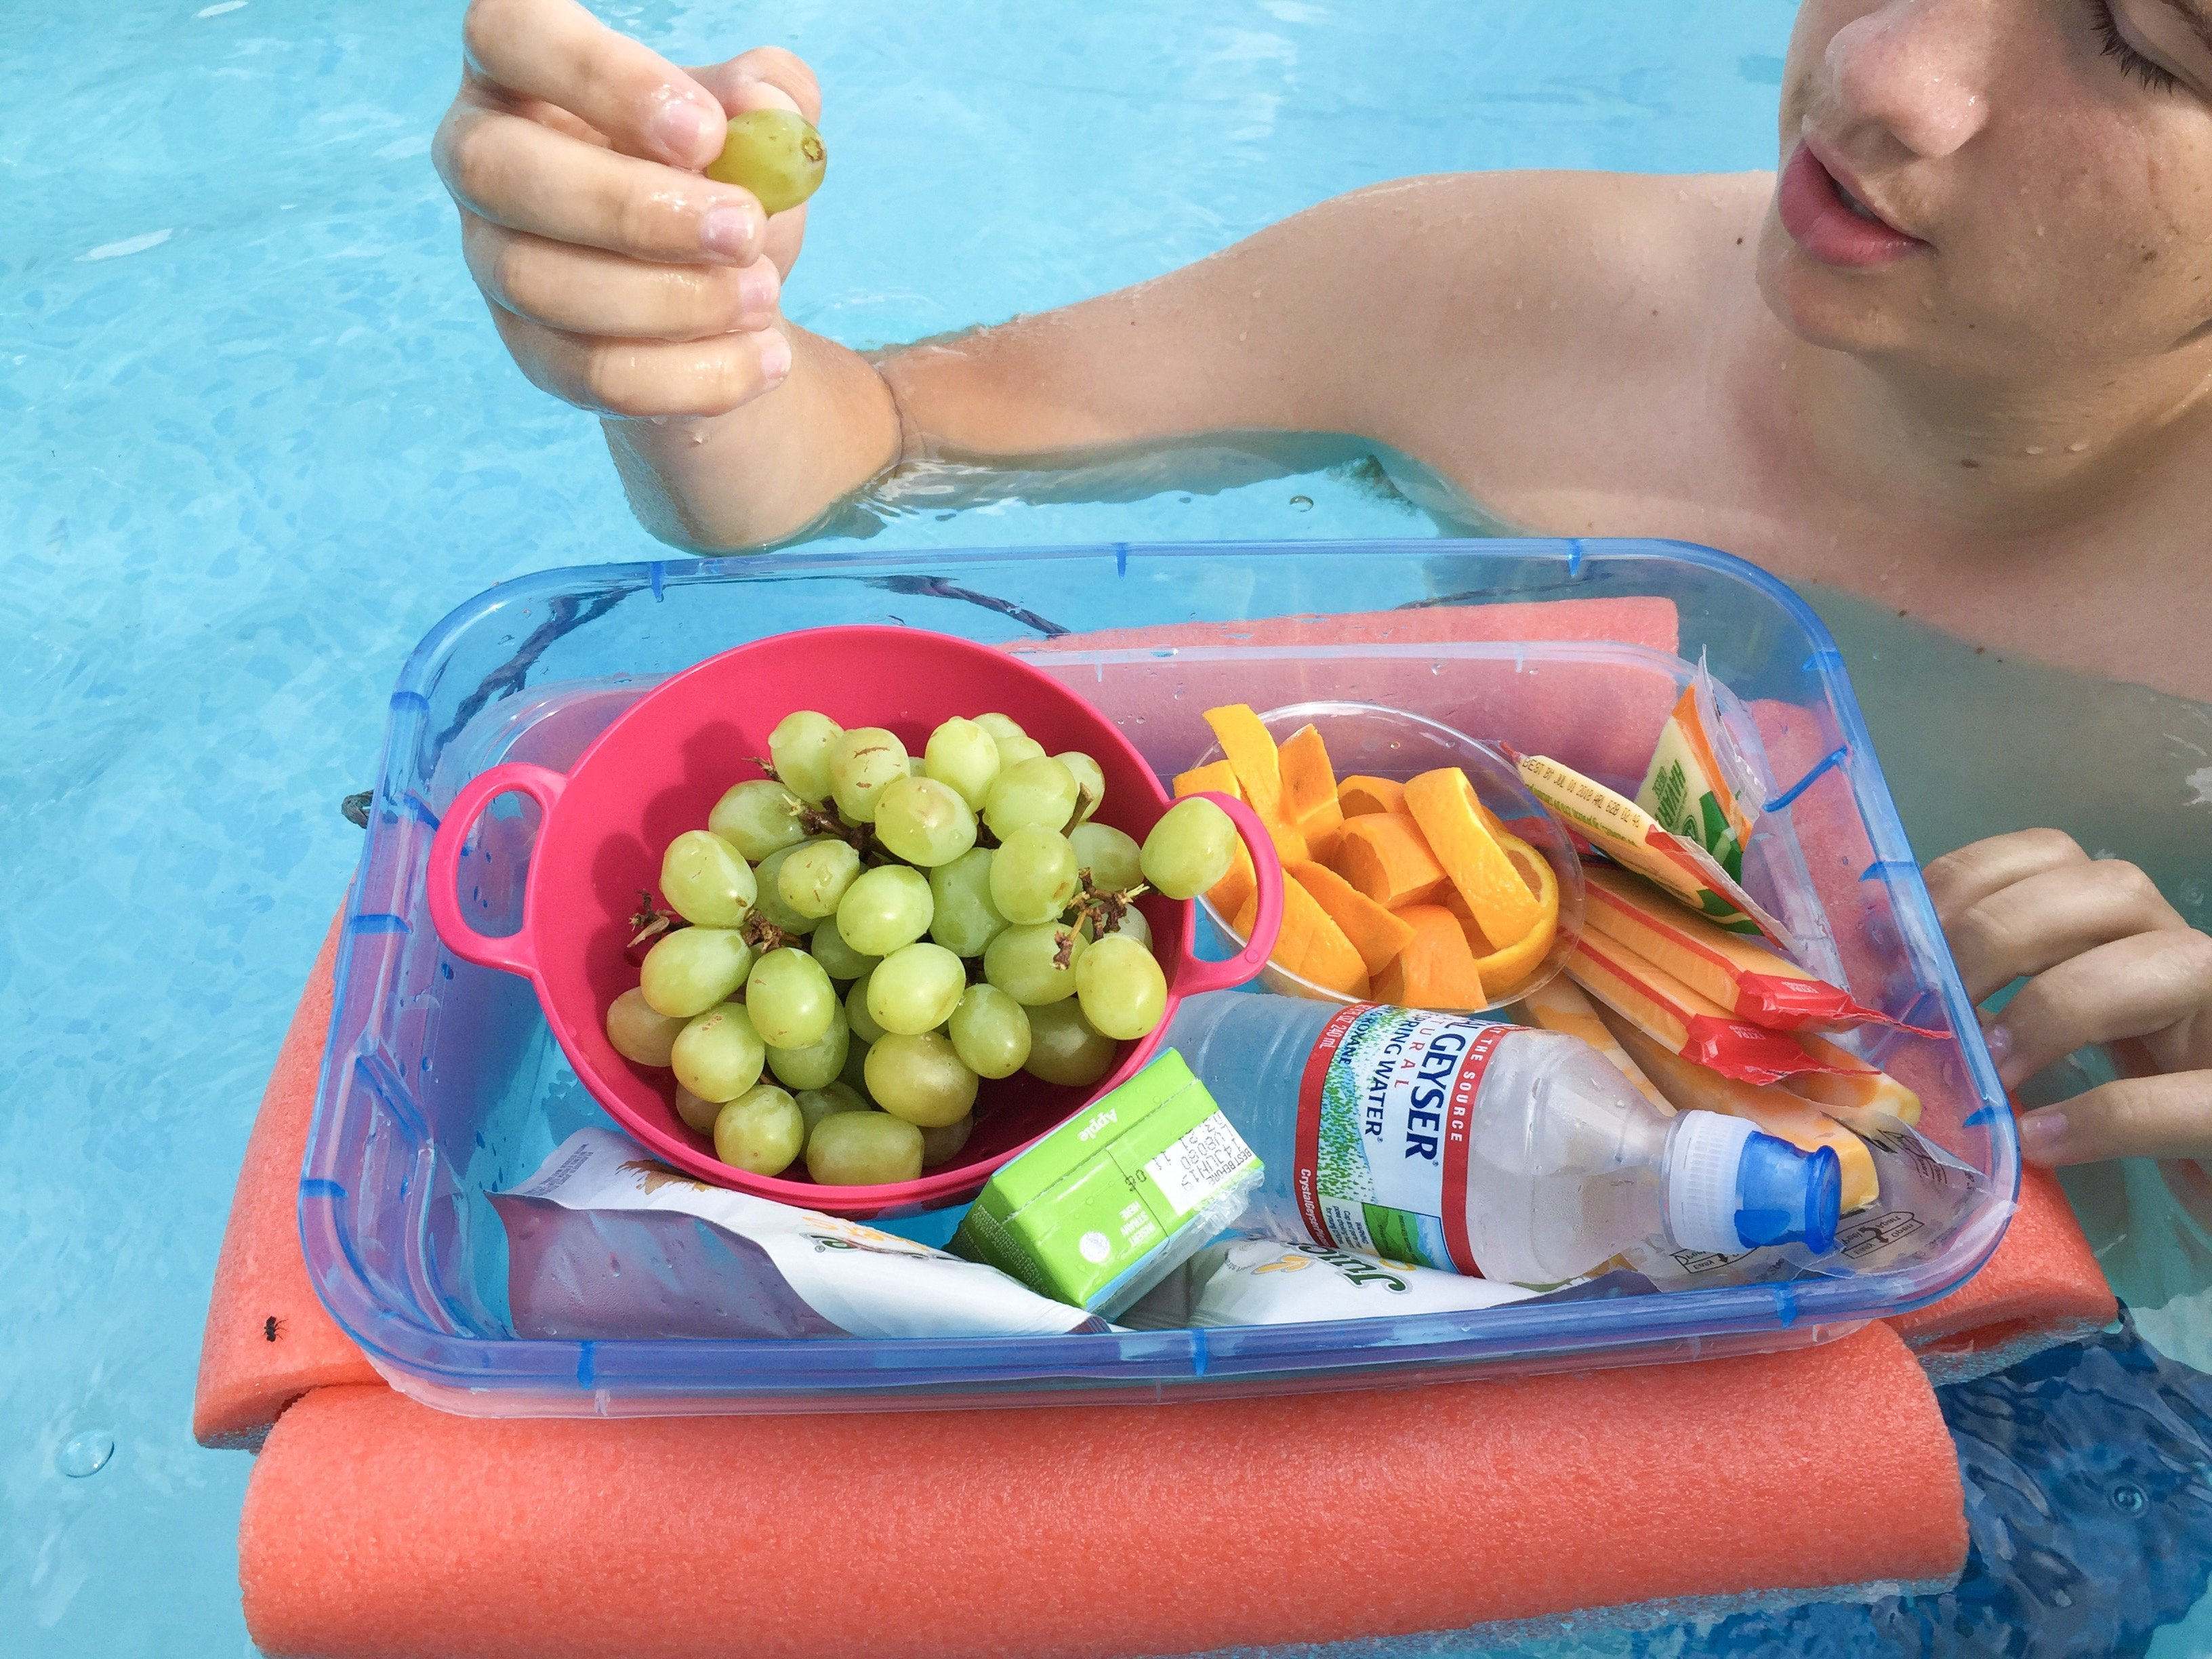 Cheap and Easy Dollar Store Pool Hacks - floating cooler #swimmingpool #poolcare #pooltime #summertime #poolhacks